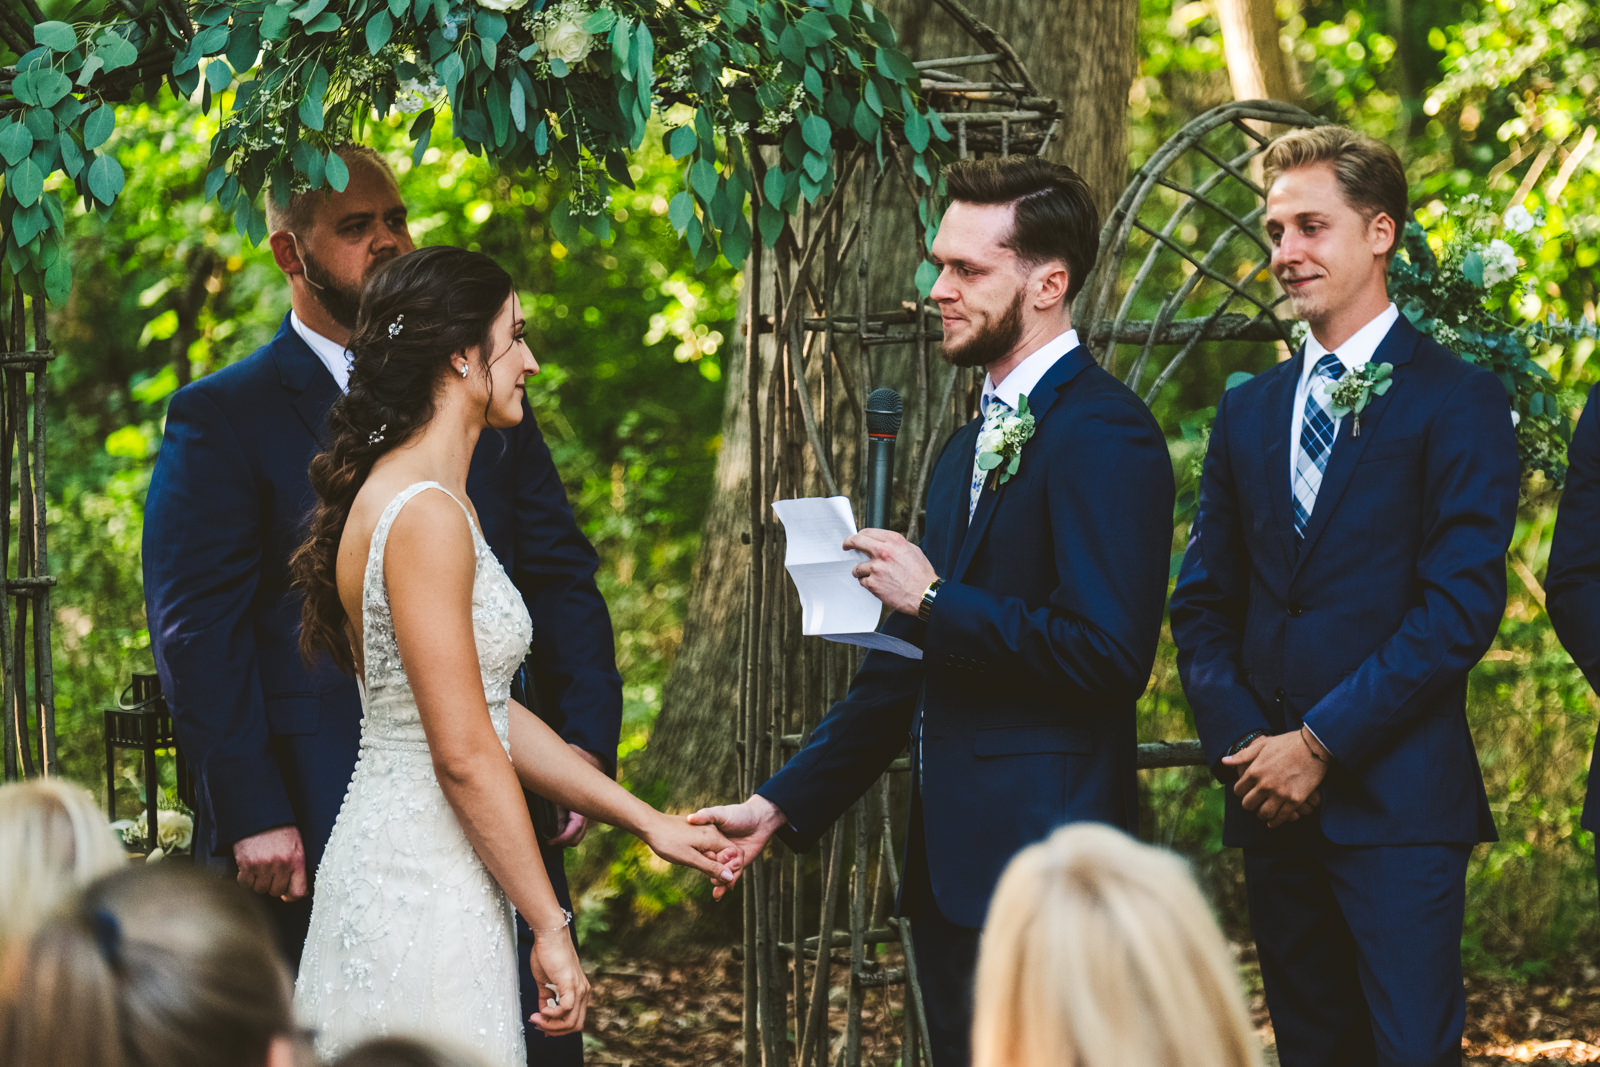 Groom on the verge of tears during outdoor ceremony in Milwaukee, Wisconsin.